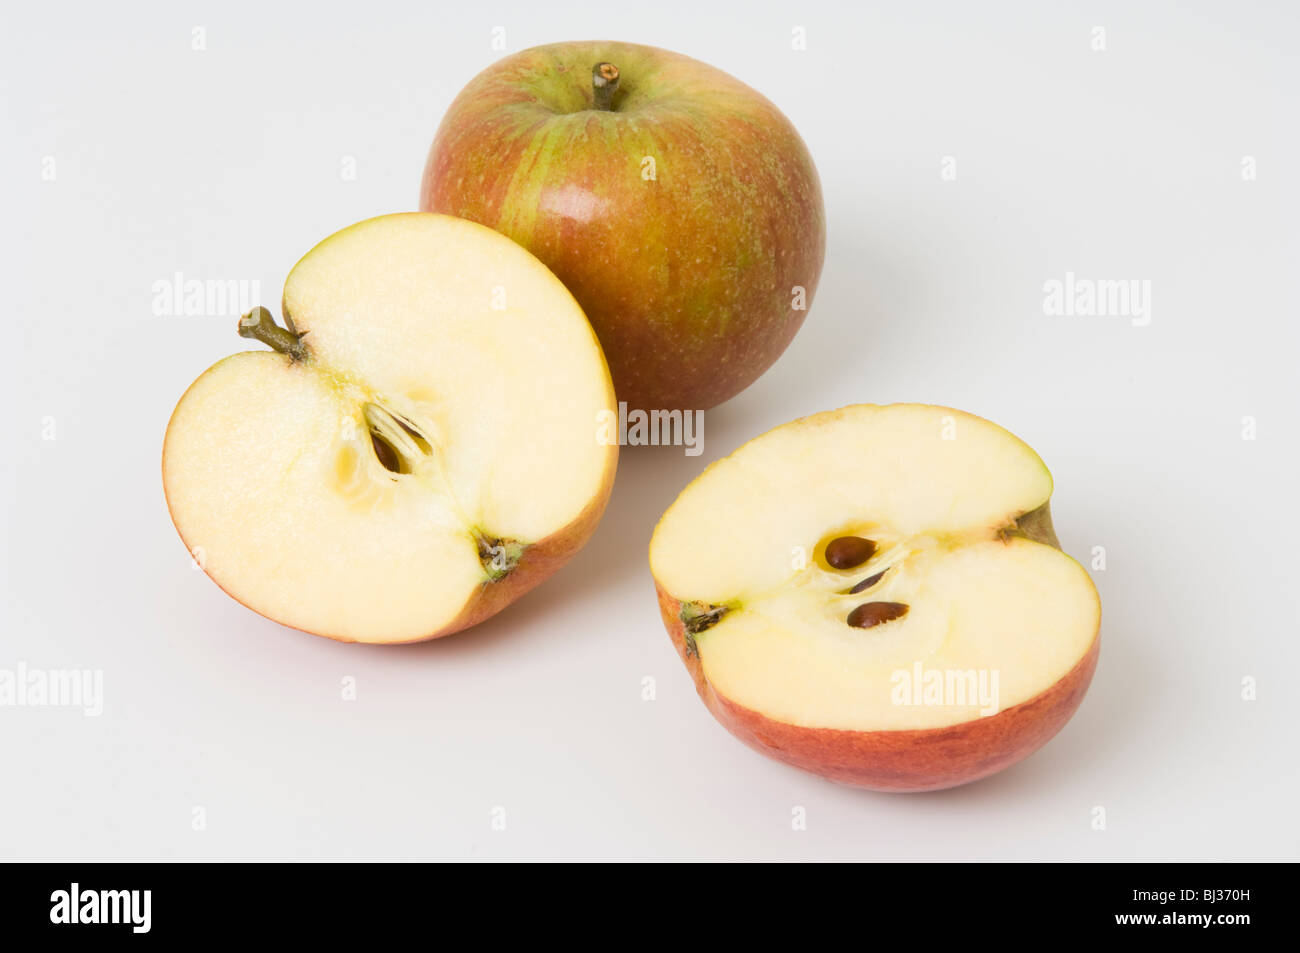 One Whole Apple And One Sliced In Half Stock Photo 28345537